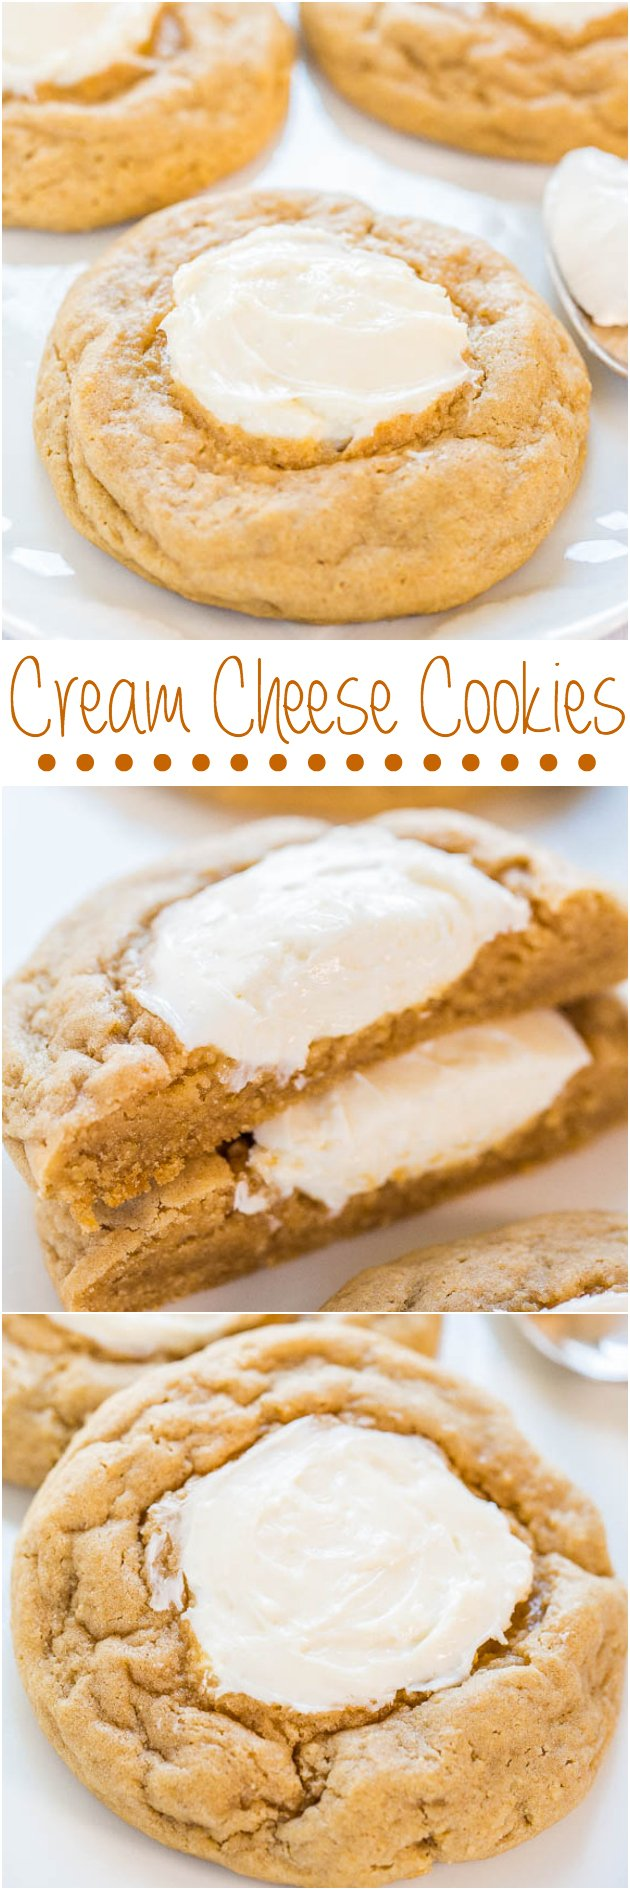 Cream Cheese Cookies - Big, soft, buttery cookies with sweet and tangy ...